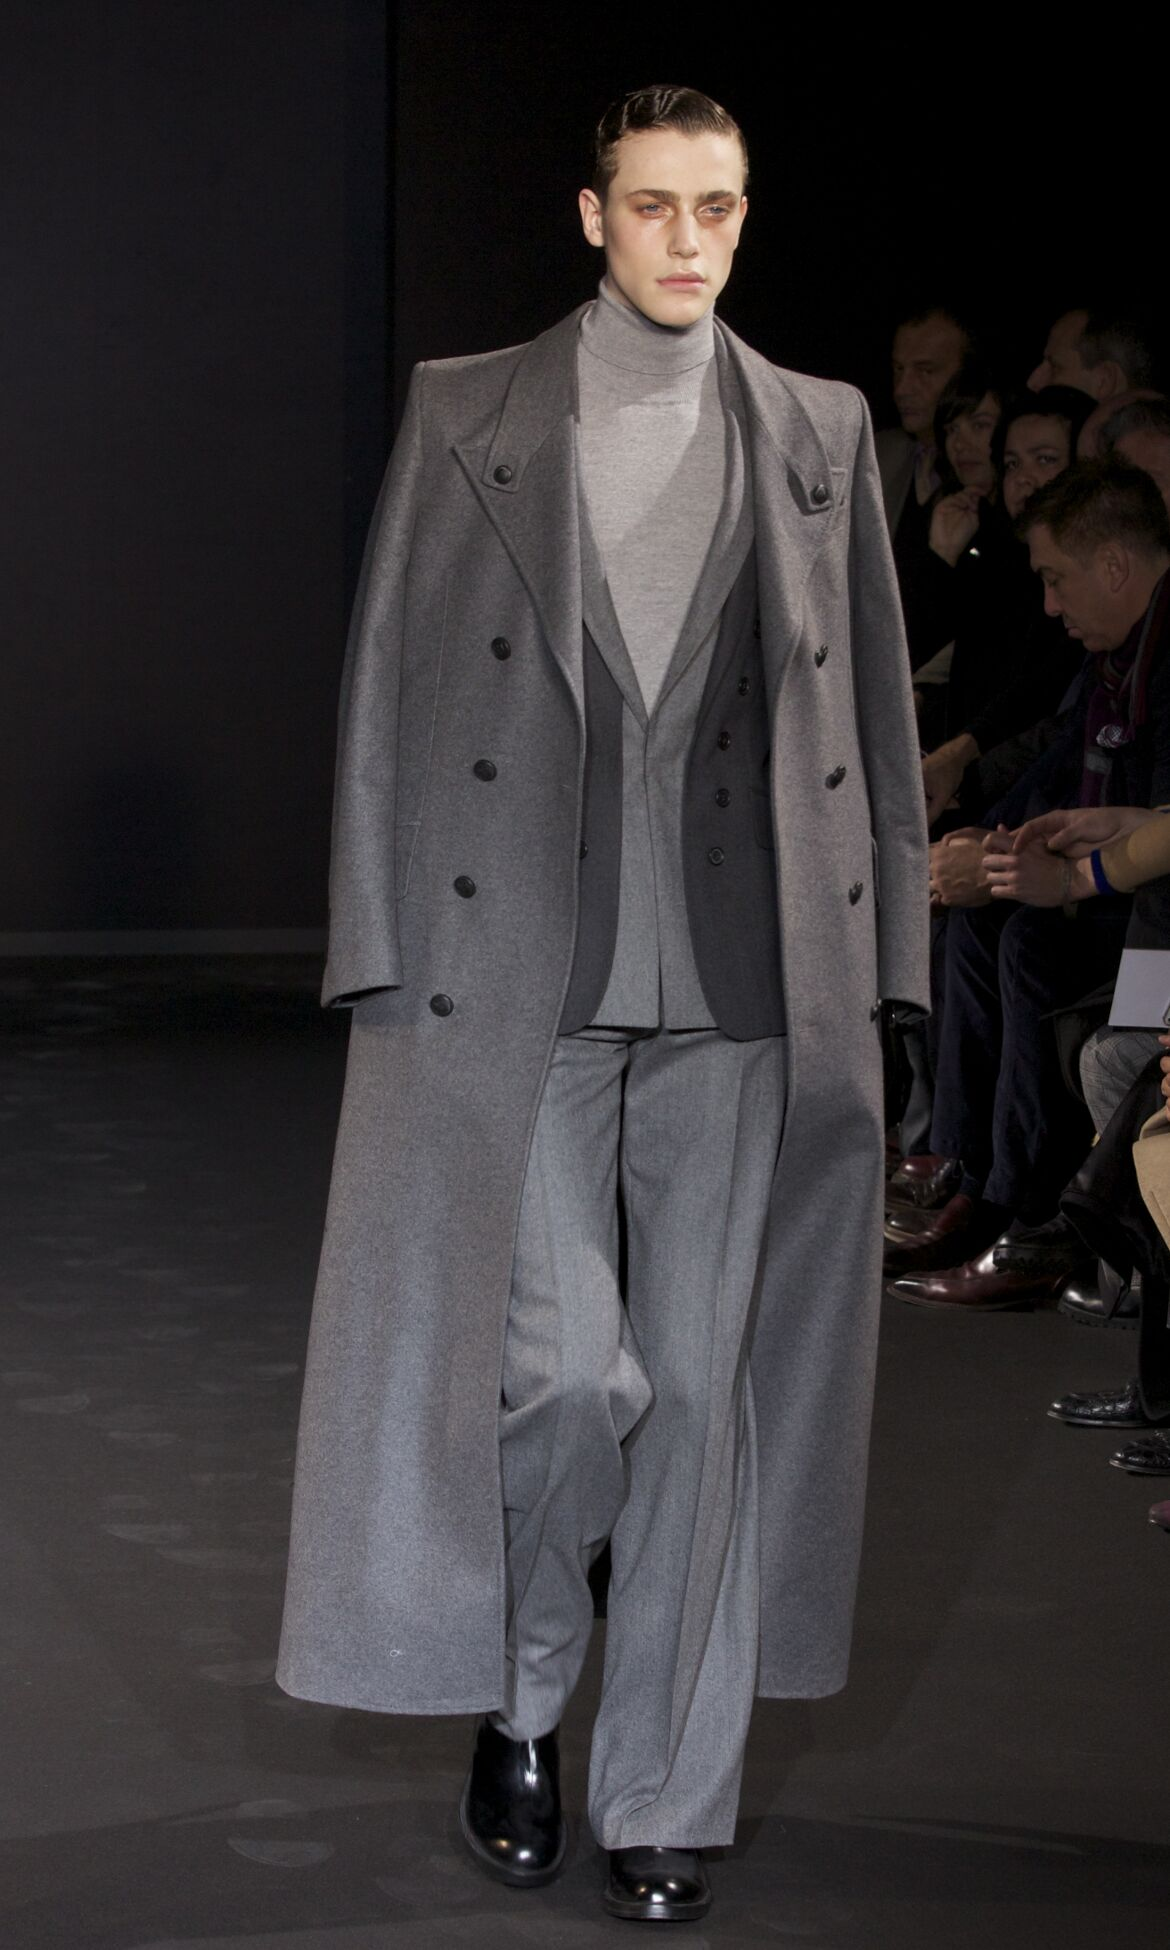 Les Hommes Fall Winter 2014